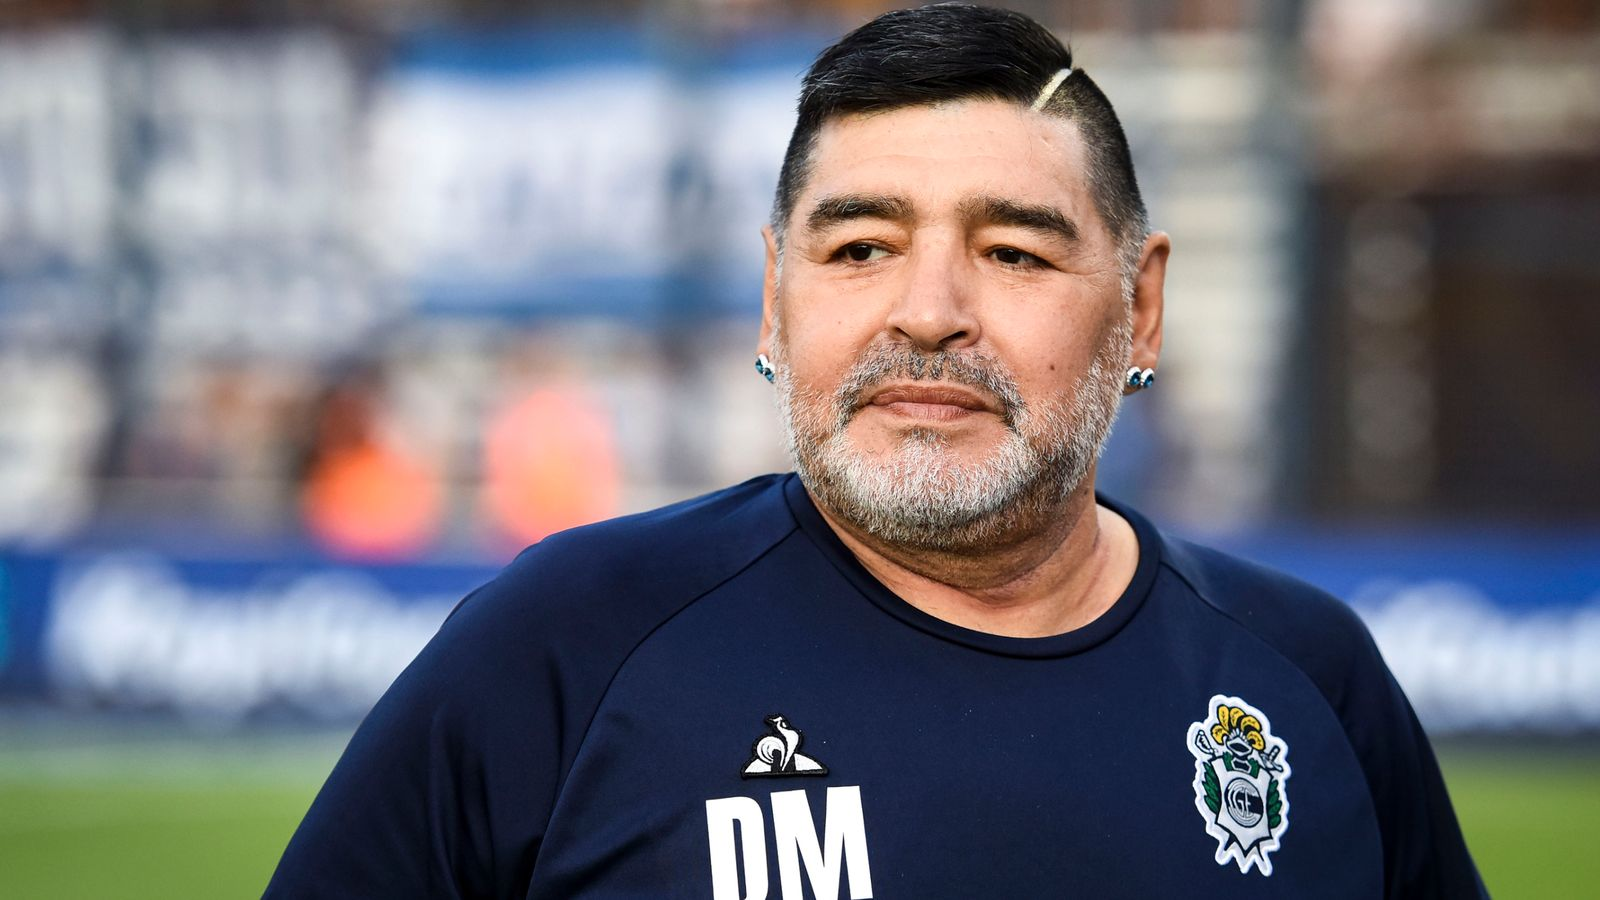 Diego Maradona: Surgery On Brain Blood Clot Successful Says Doctor